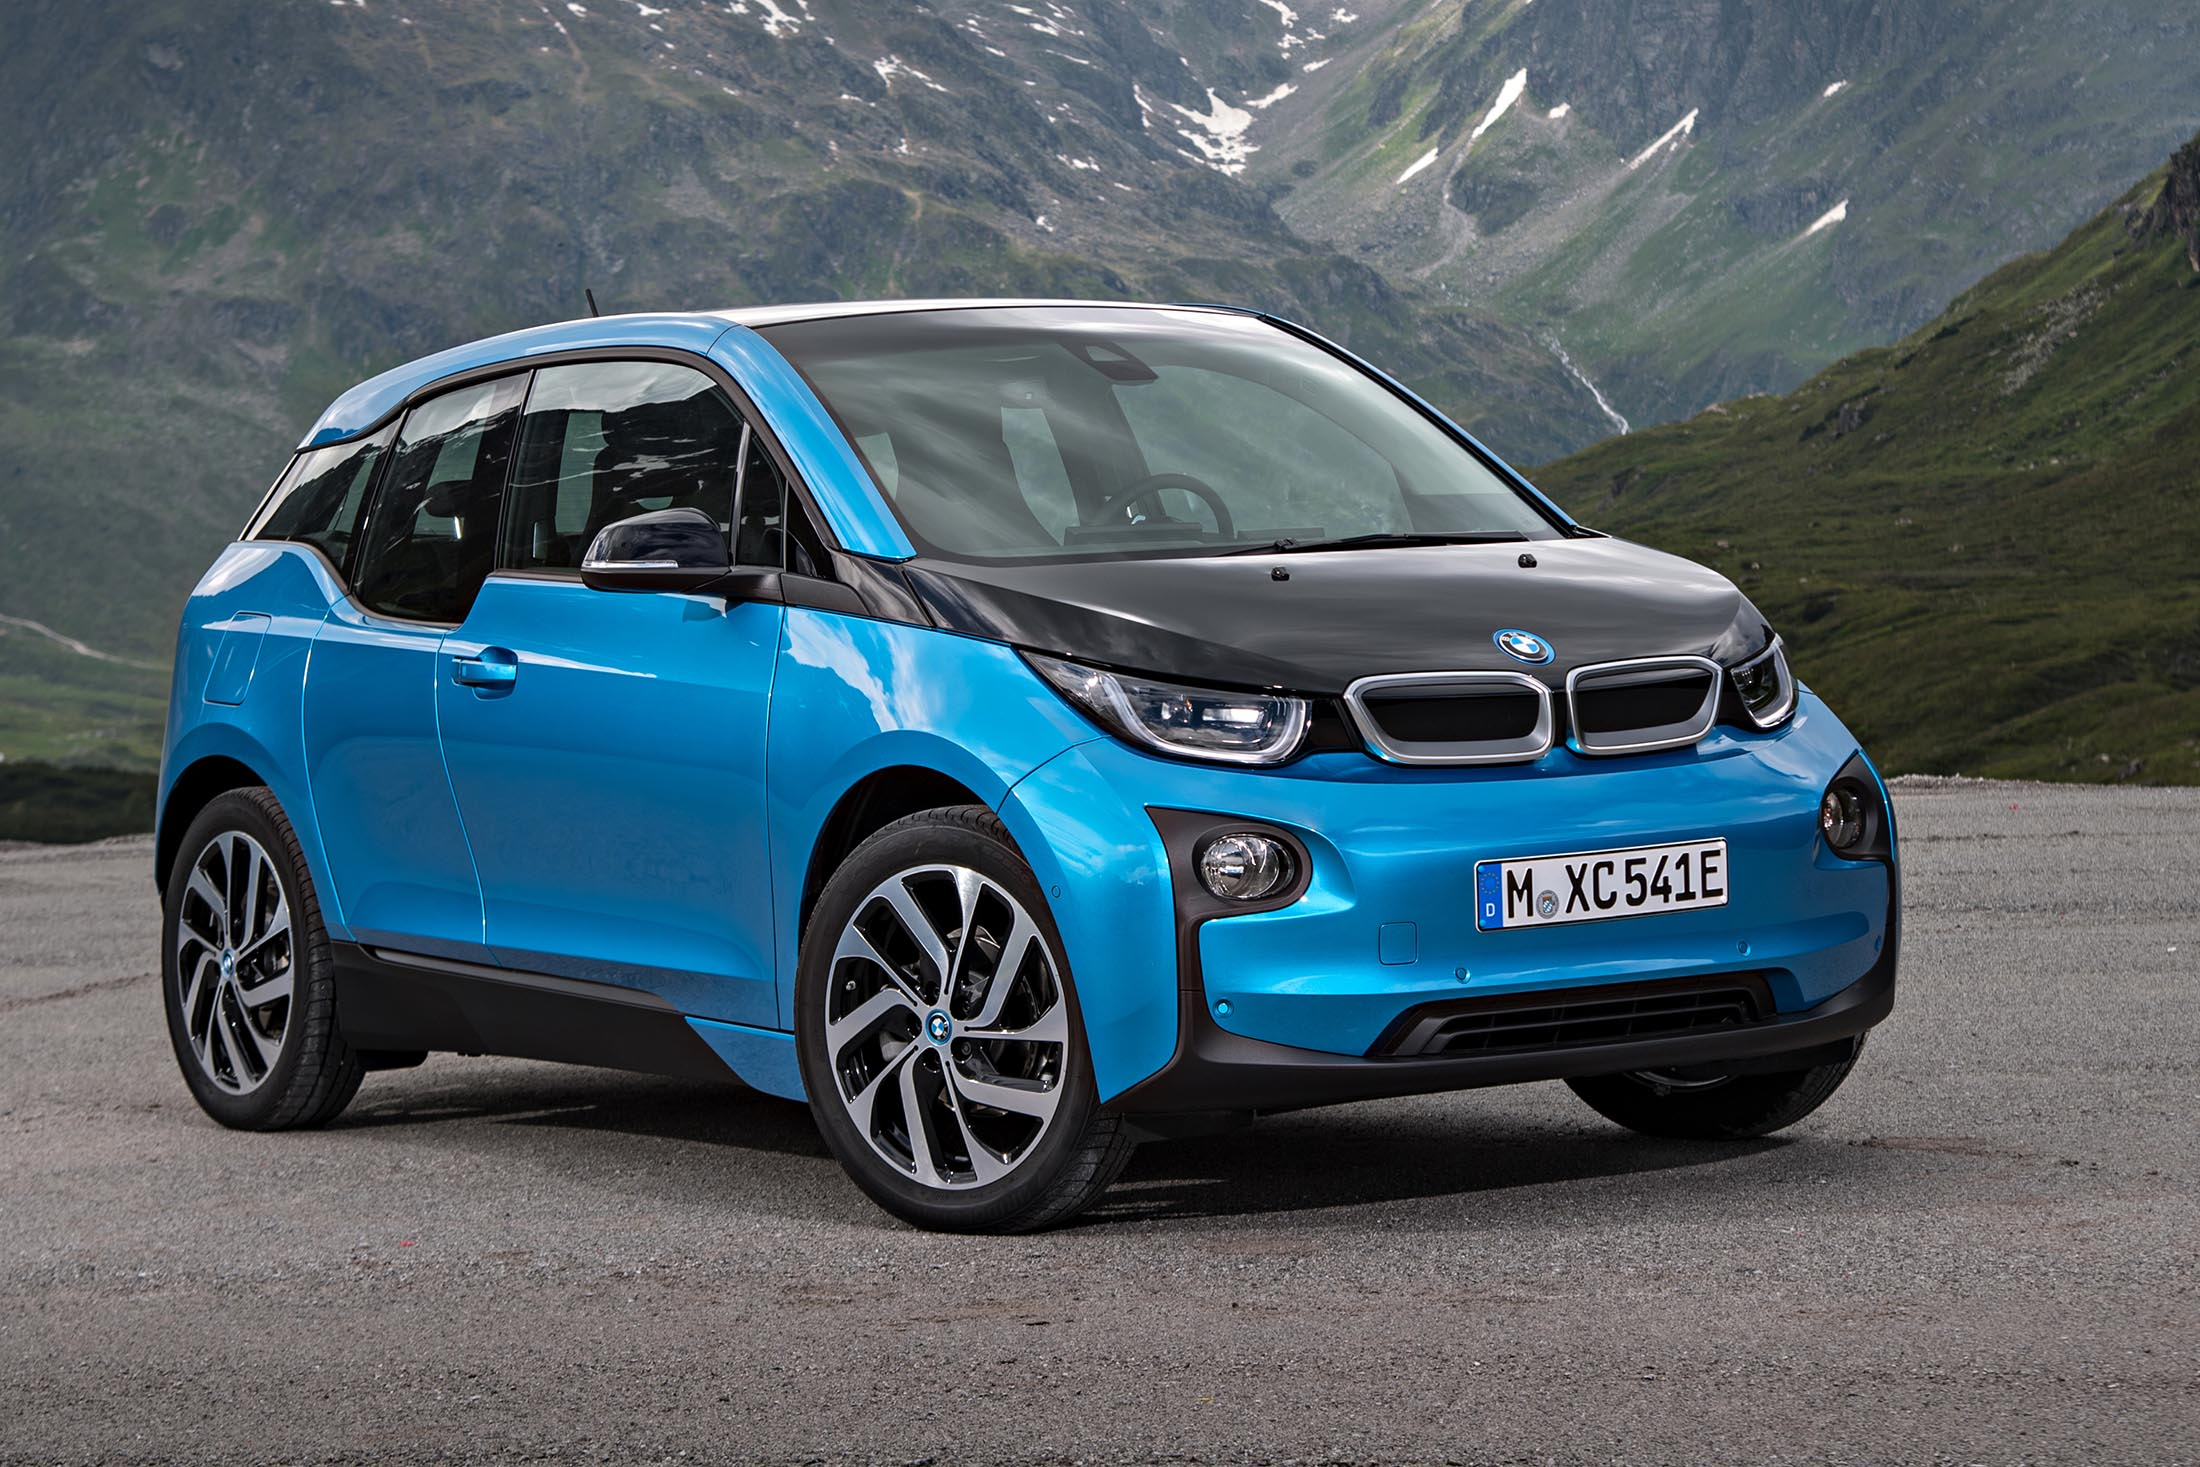 Bmw sees battery costs causing years of tears on e cars for Newspaper wallpaper for sale